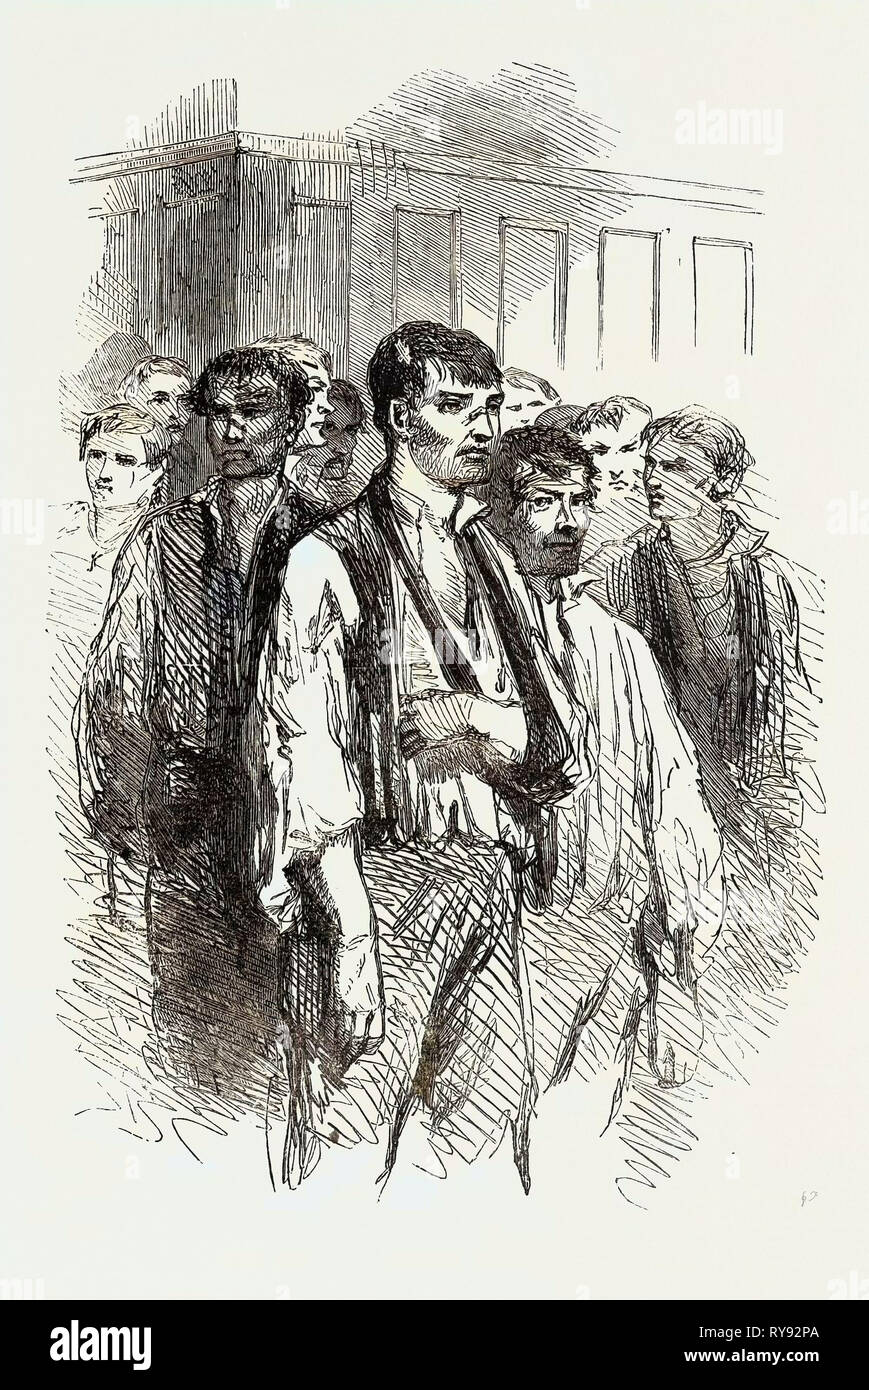 The Riot at Stockport: Prisoners Brought Into Court, 1852 - Stock Image